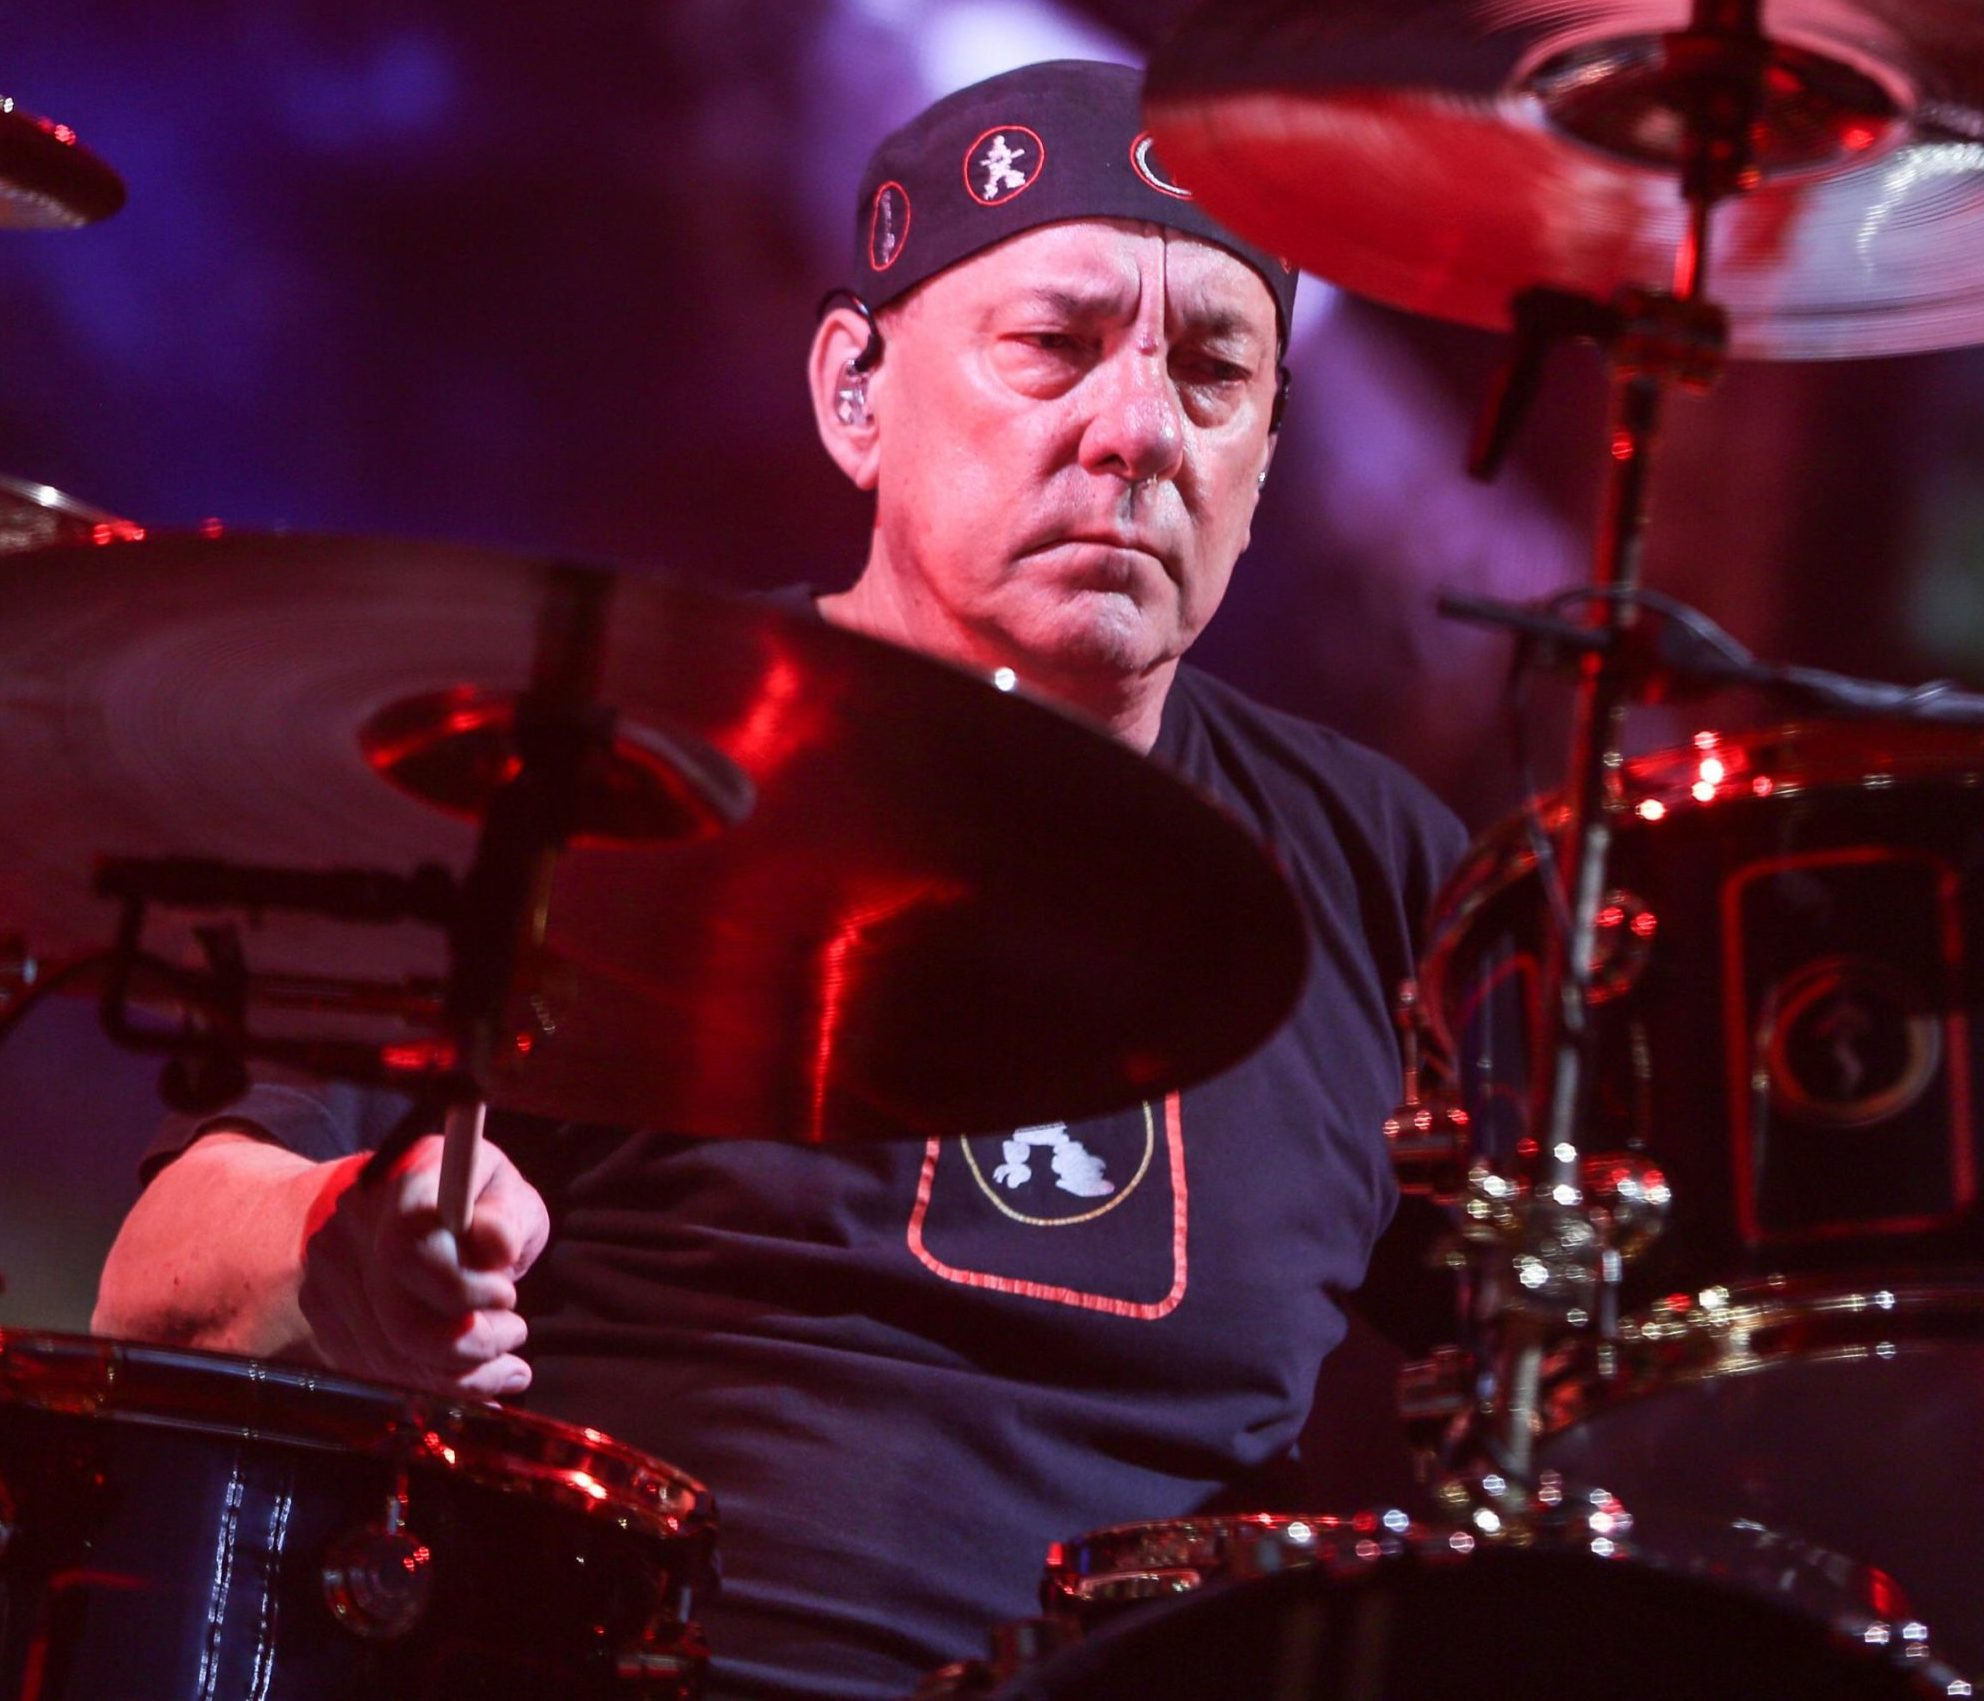 Obit Neil Peart 70297 1 scaled e1610464368257 20 Things You Probably Never Knew About Rush